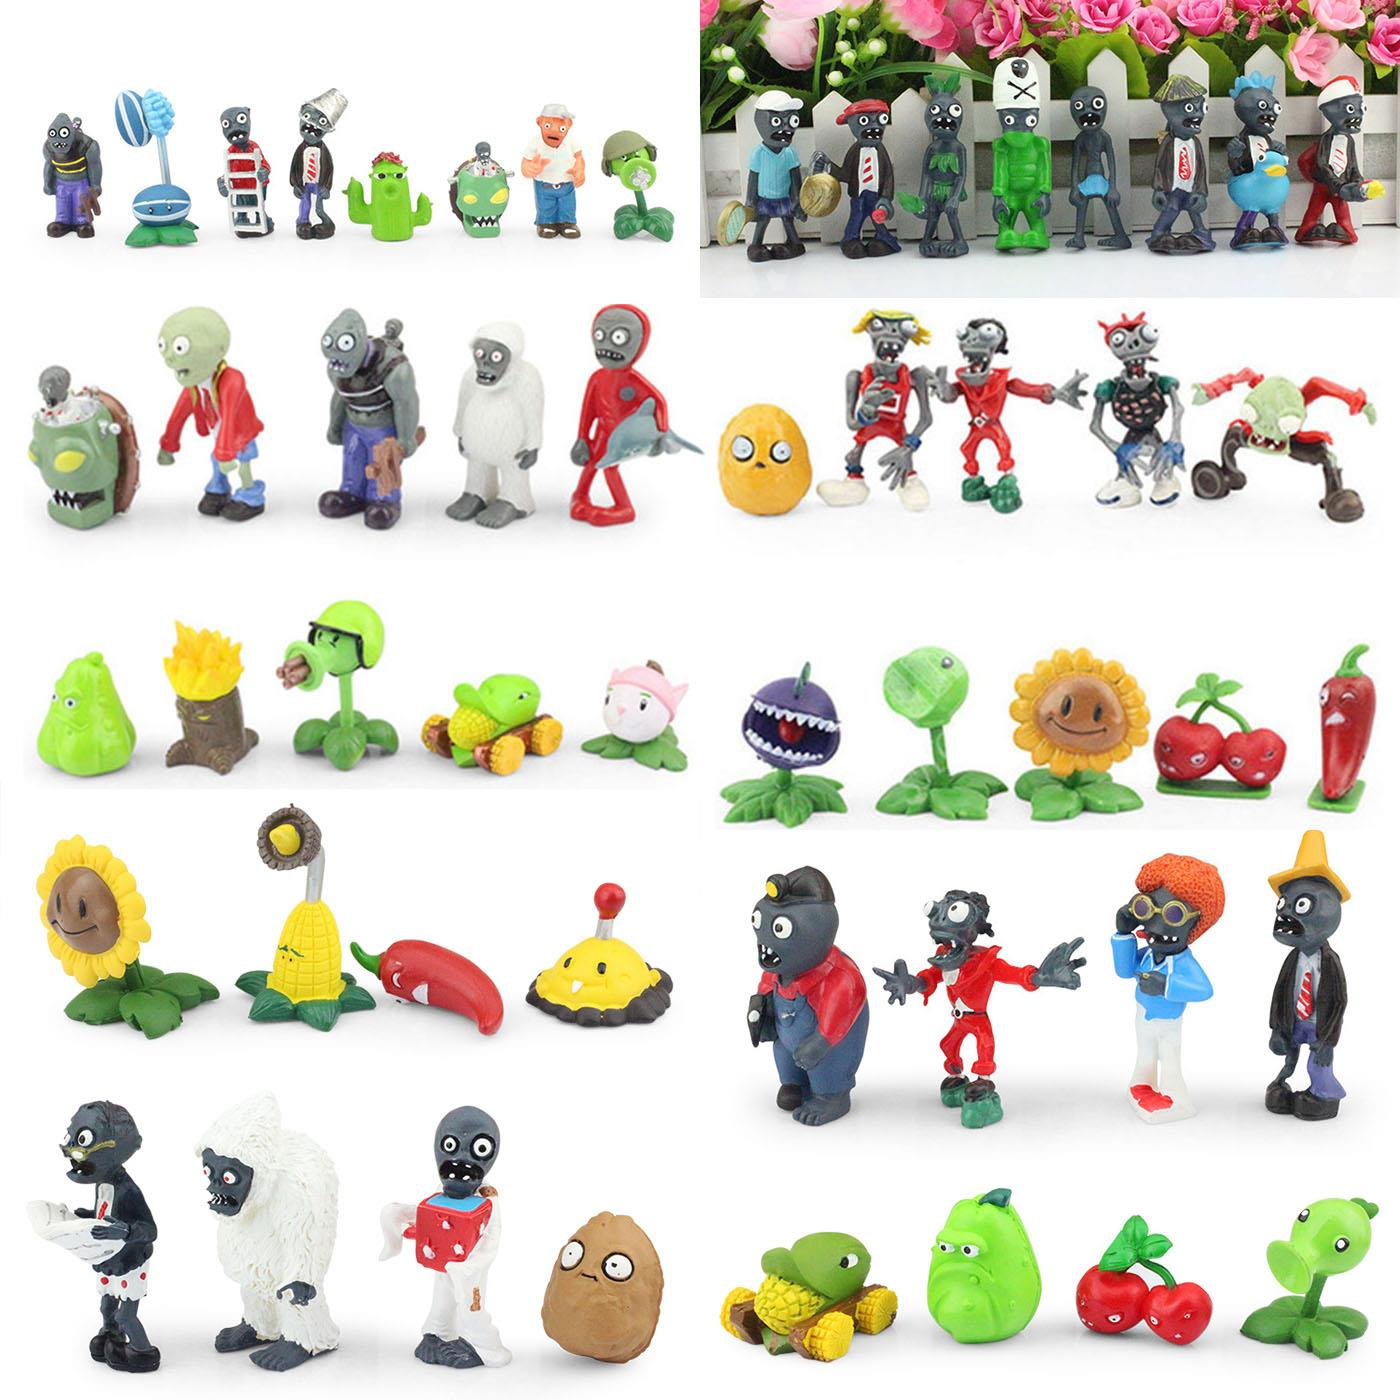 52 stks/set Plants VS Zombies PVZ Collection Cijfers Speelgoed alle Planten en zombies figuur Speelgoed Gratis Verzending-in Actie- & Speelgoedfiguren van Speelgoed & Hobbies op  Groep 1